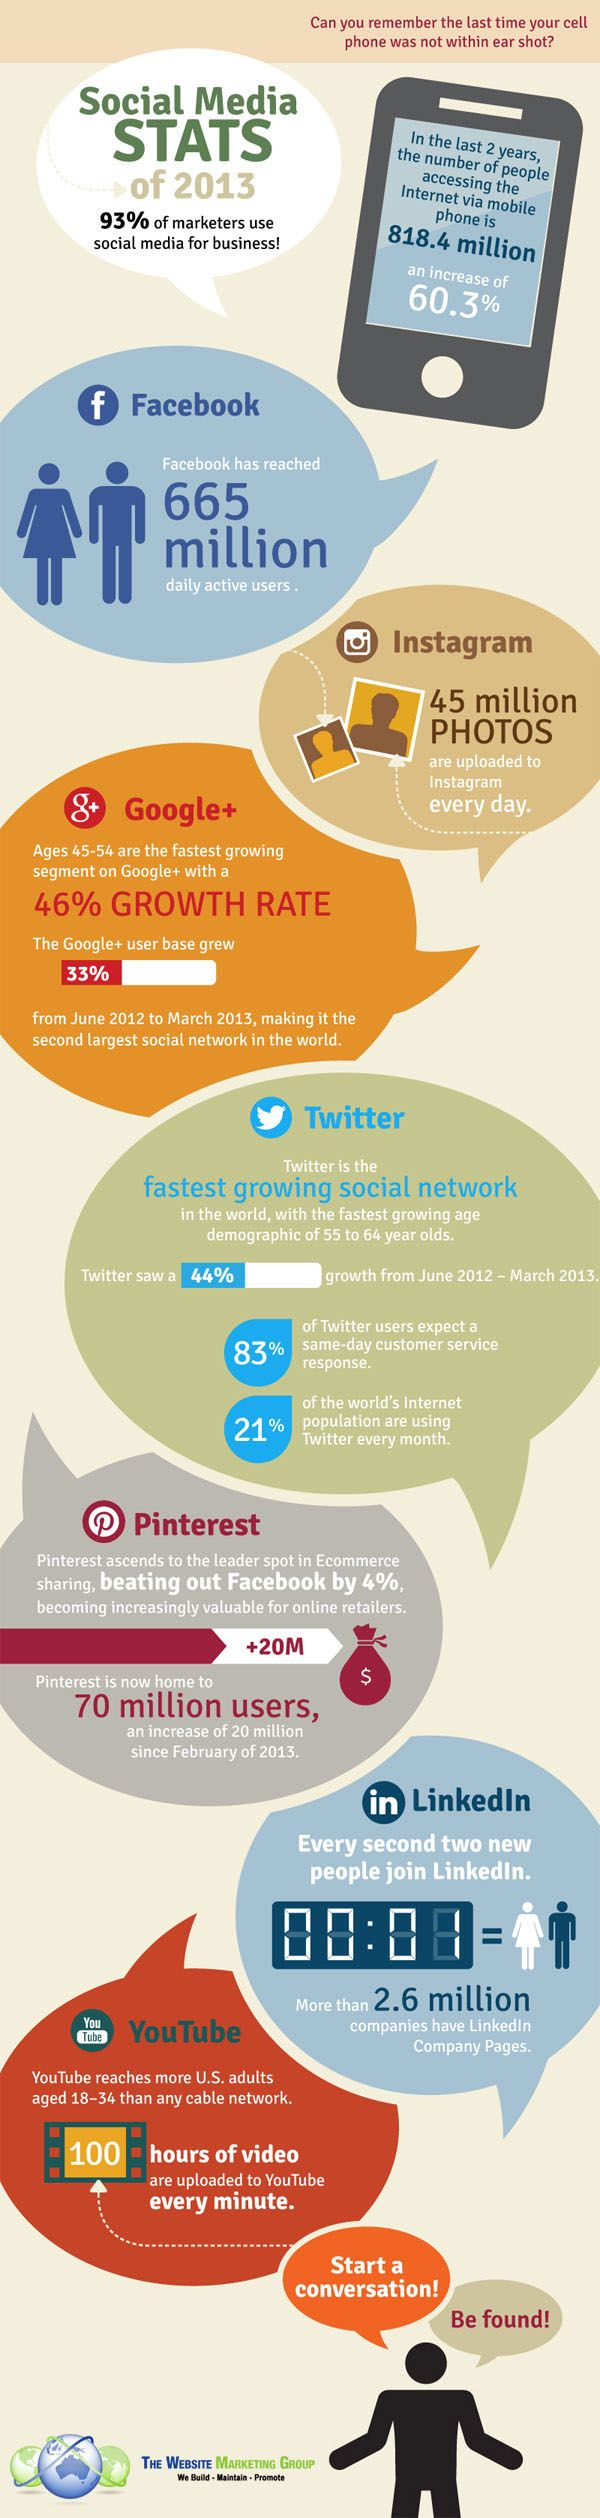 """""""Pinterest ascends to the leader spot in Ecommerce sharing, beating out Facebook by 4%"""" 15 Eye-Opening Social Media Statistics, Facts & Figures [INFOGRAPHIC]"""